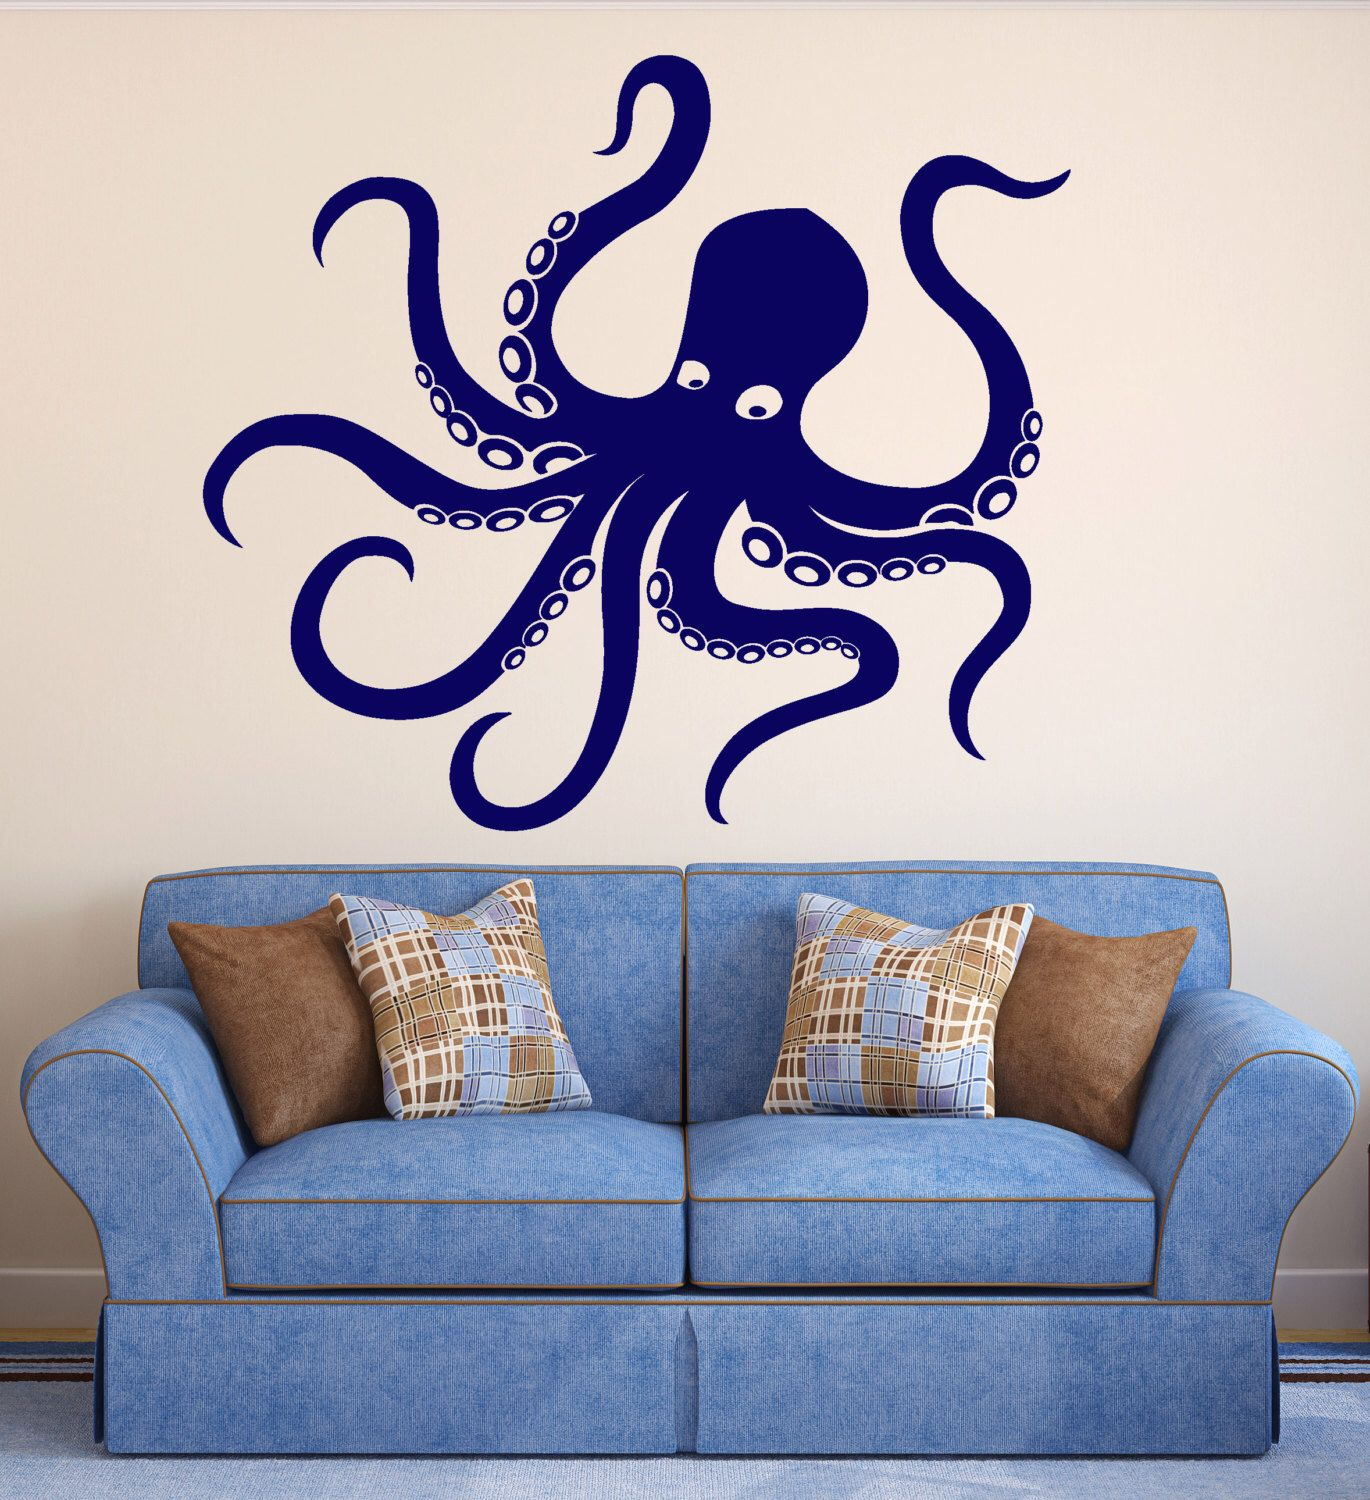 Vinyl Wall Decal Octopus Tentacles Marine Animal Sea Decor - Wall decals on furniture